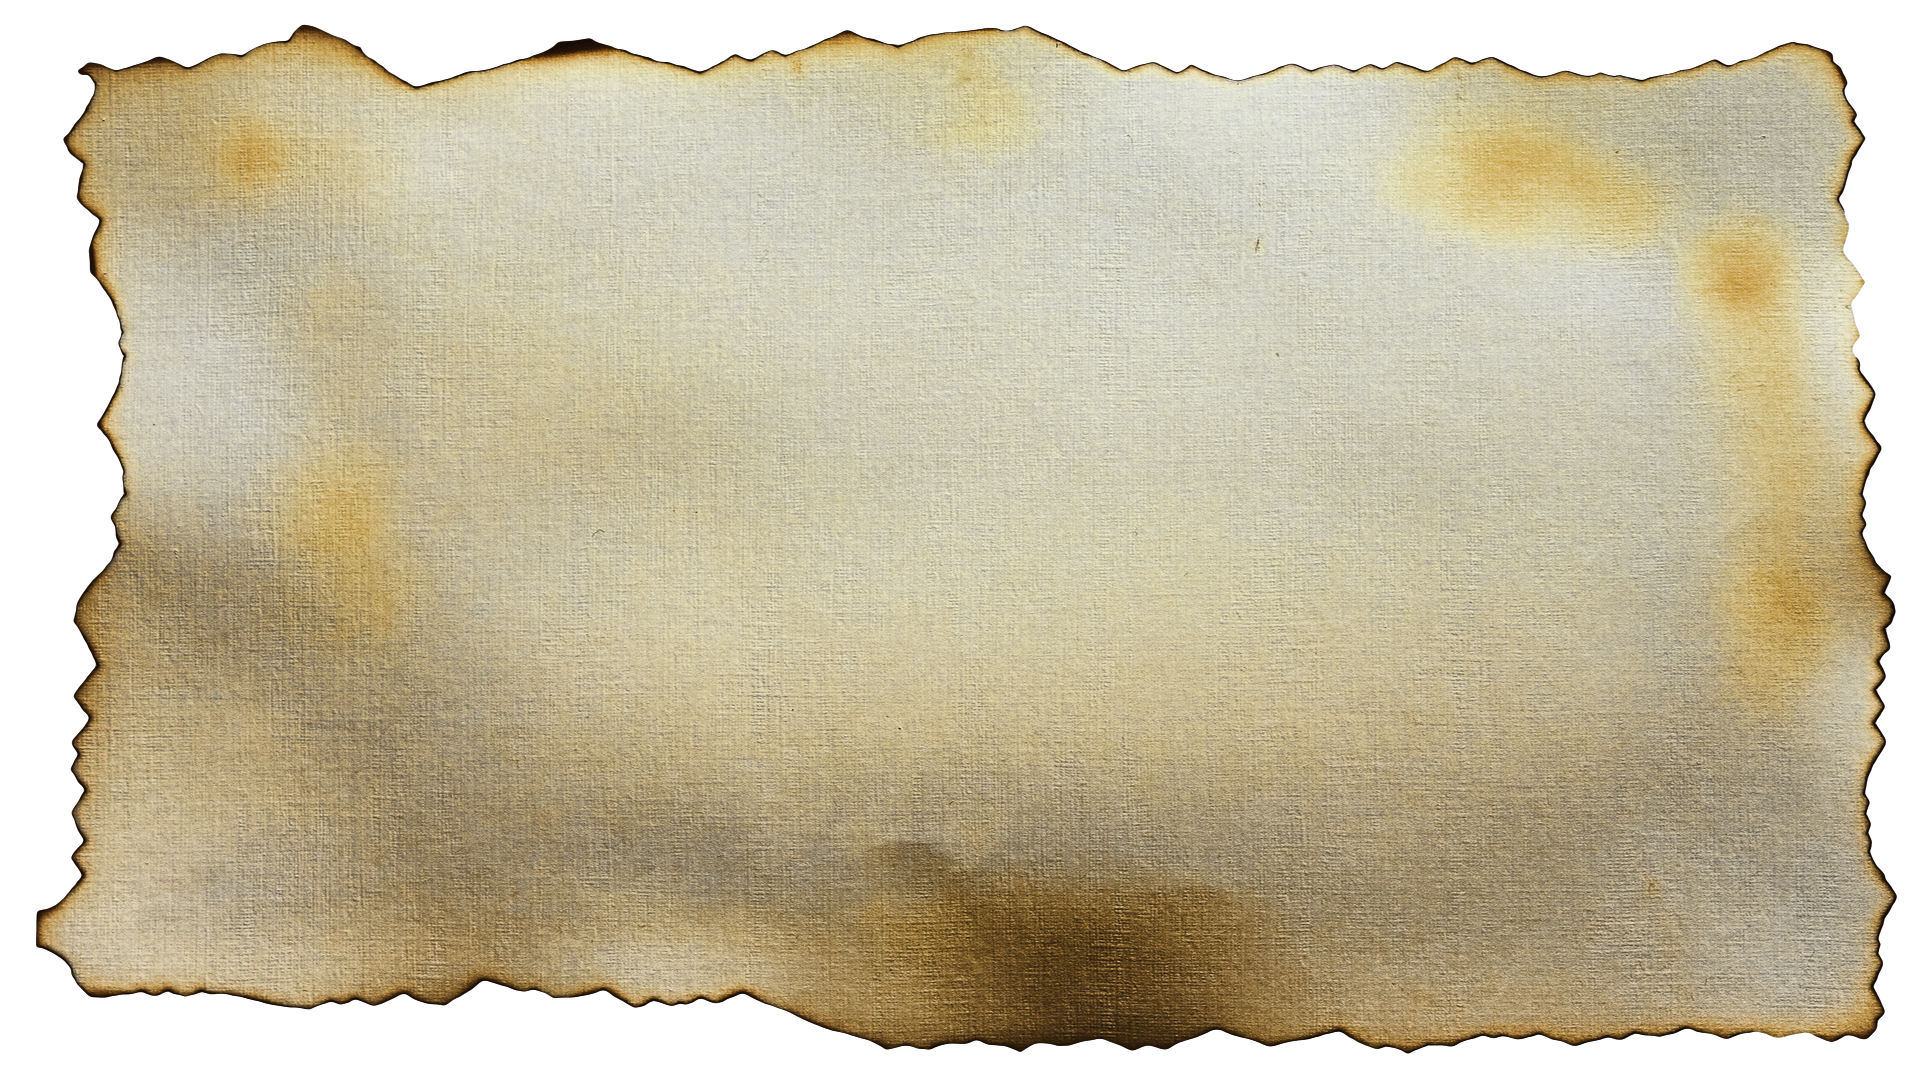 Vintage Burned Paper Background Texture HD